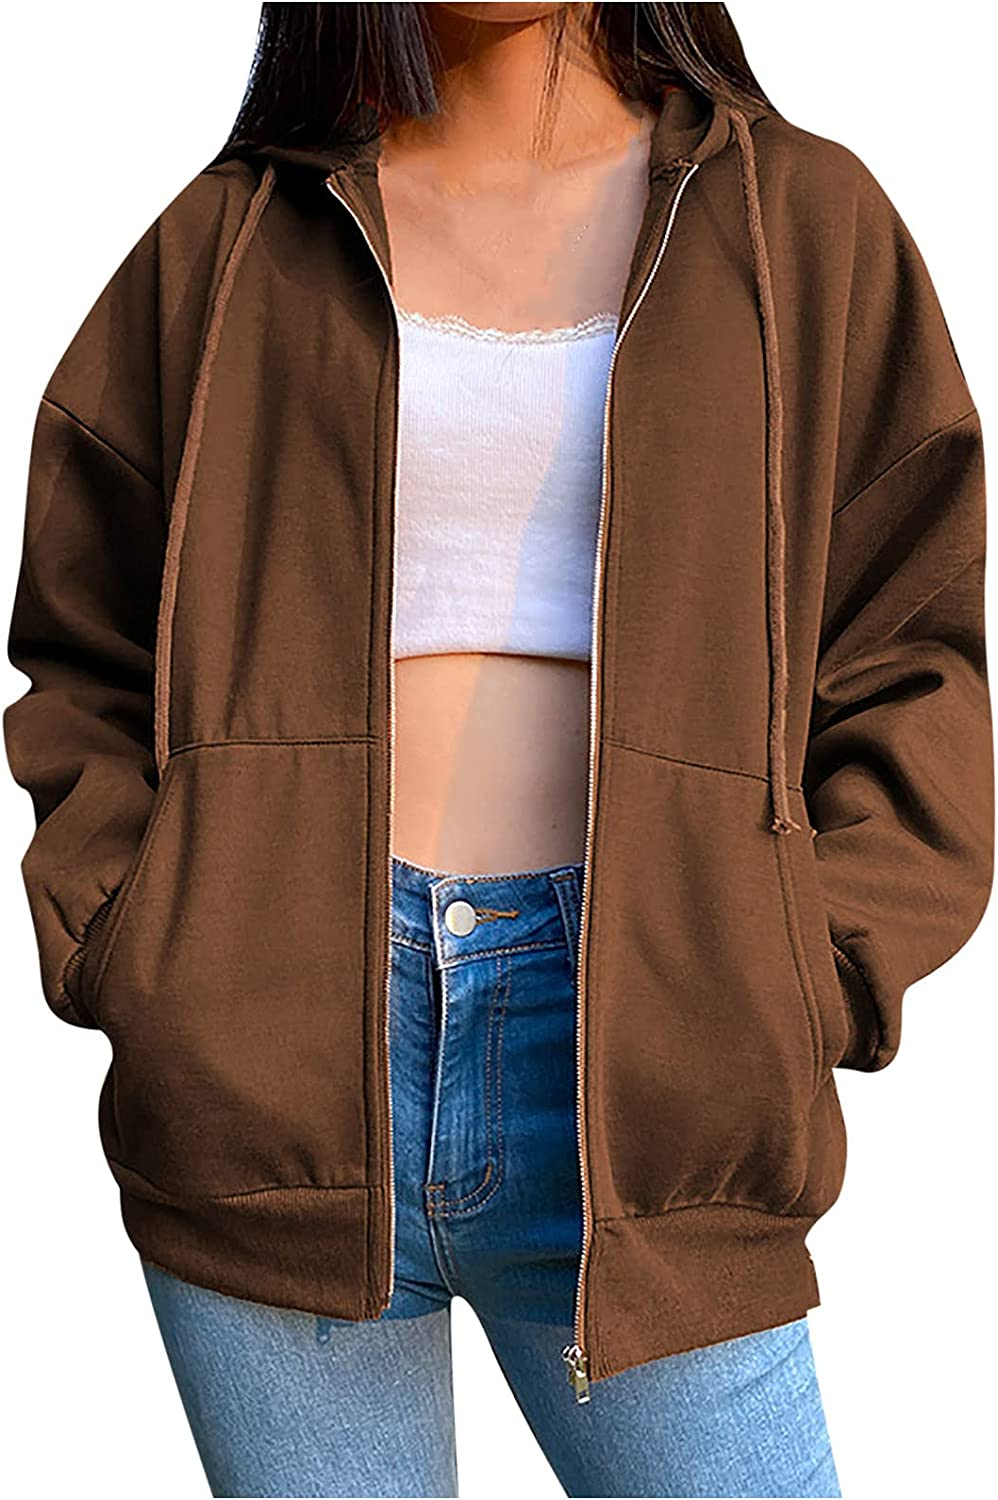 Lightweight Athletic Hooded for Women Full Zip Up Long Sleeve Comfortable Runing Jackets with Pockets